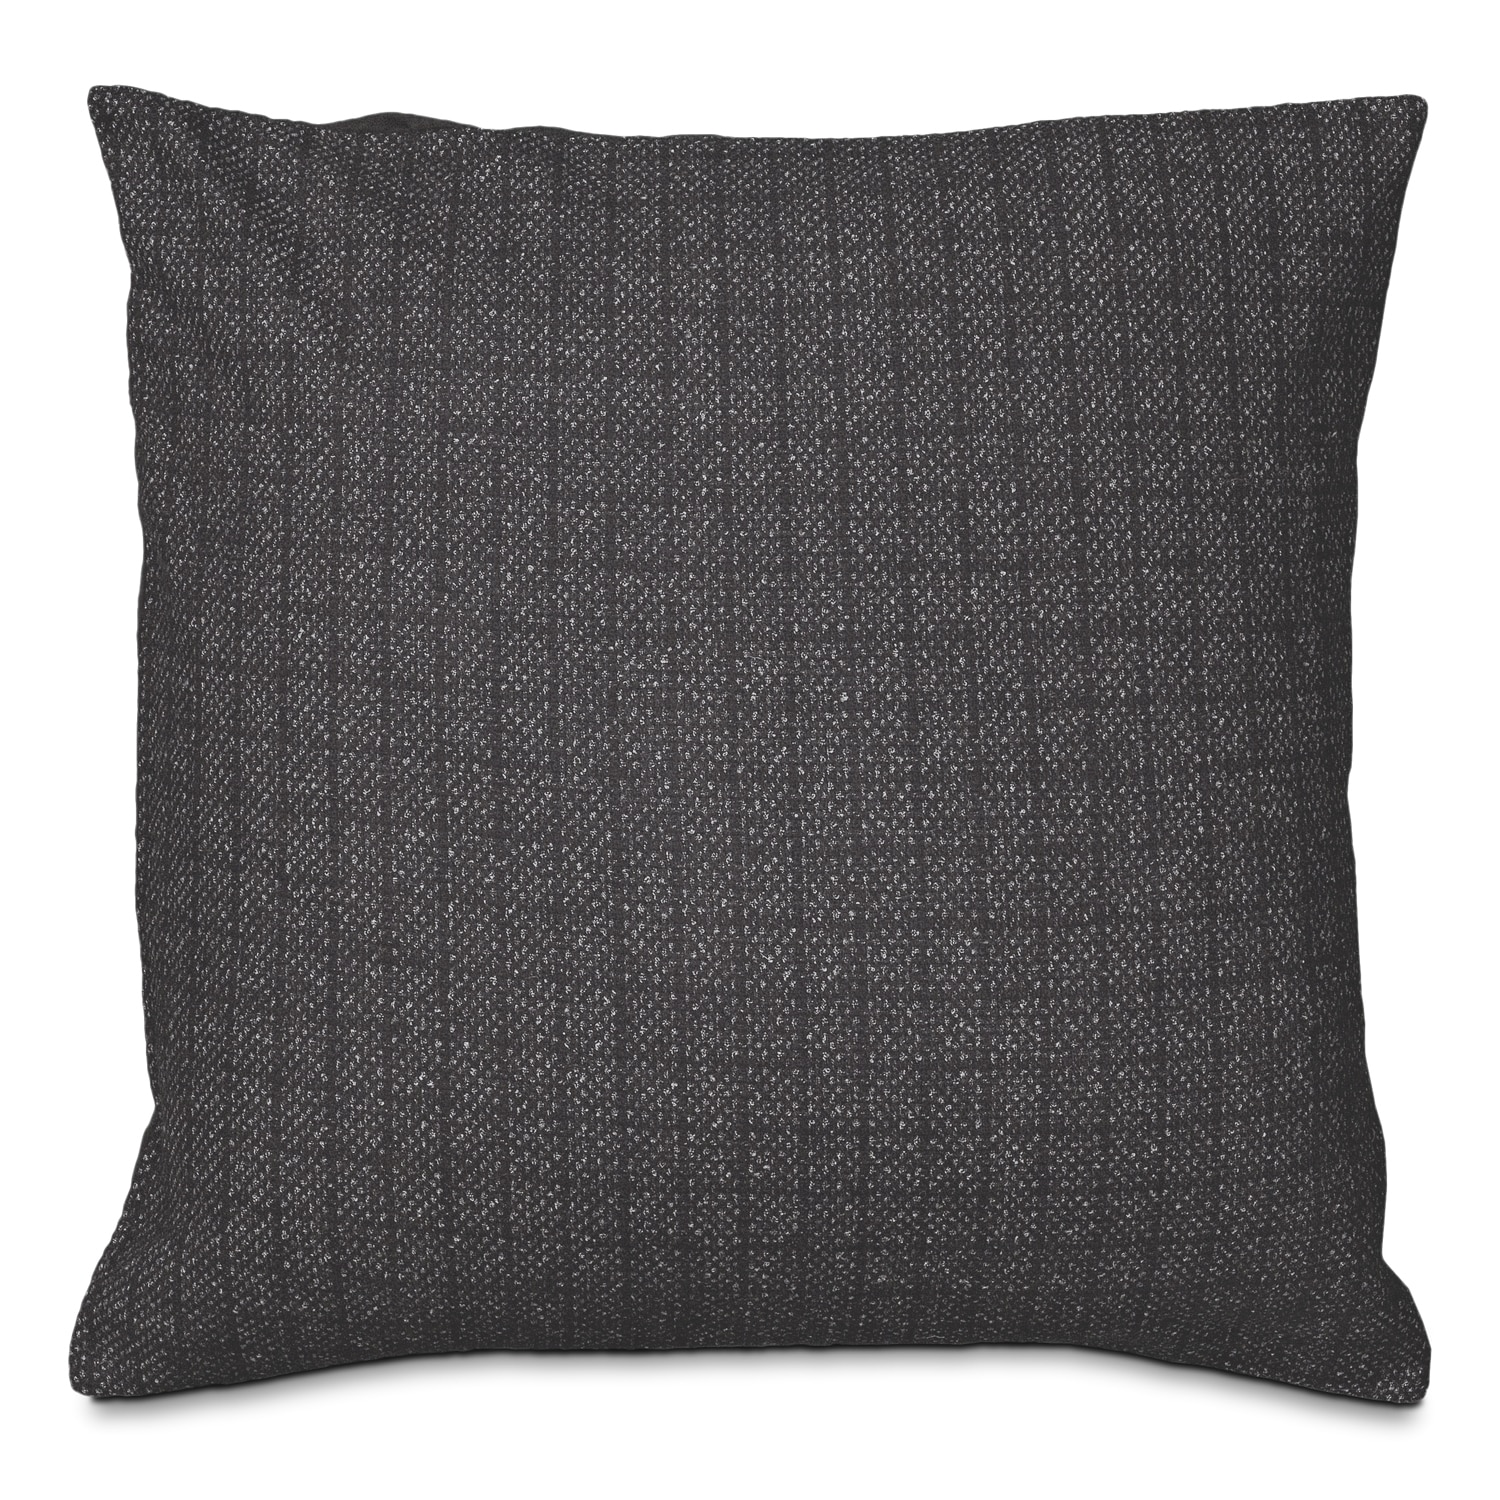 Giselle Decorative Pillow